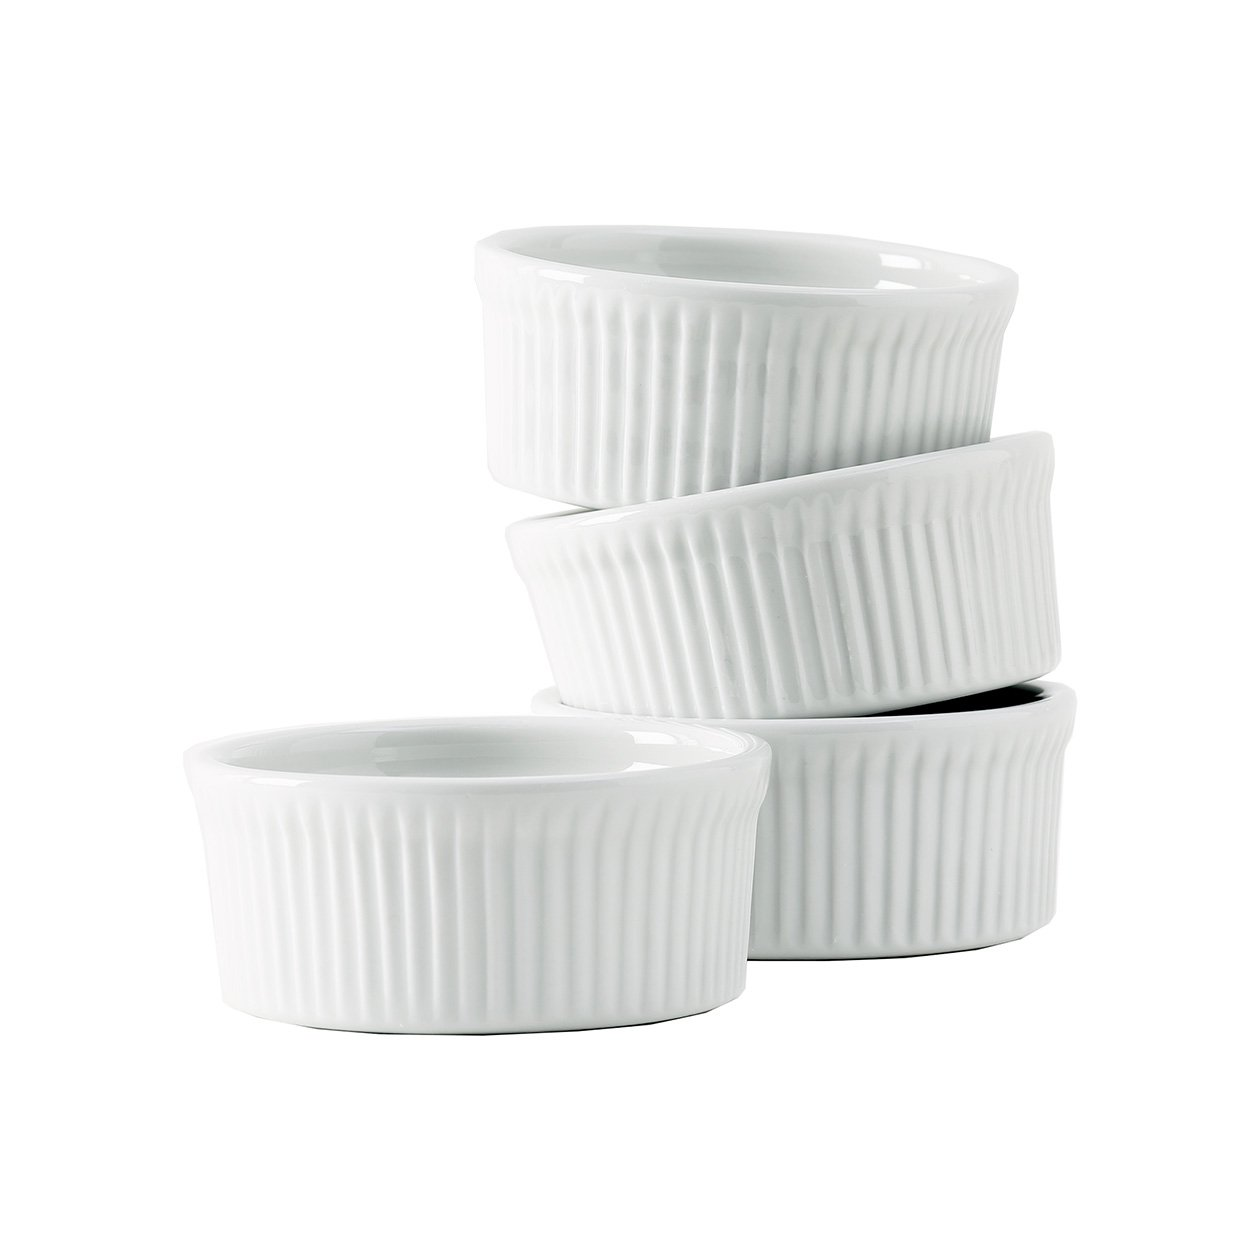 Tuxton Home Duratux Porcelain White Soufflà 10 oz - Set of 4; Heavy Duty; Chip Resistant; Lead and Cadmium Free; Freezer to Oven Safe up to 500F